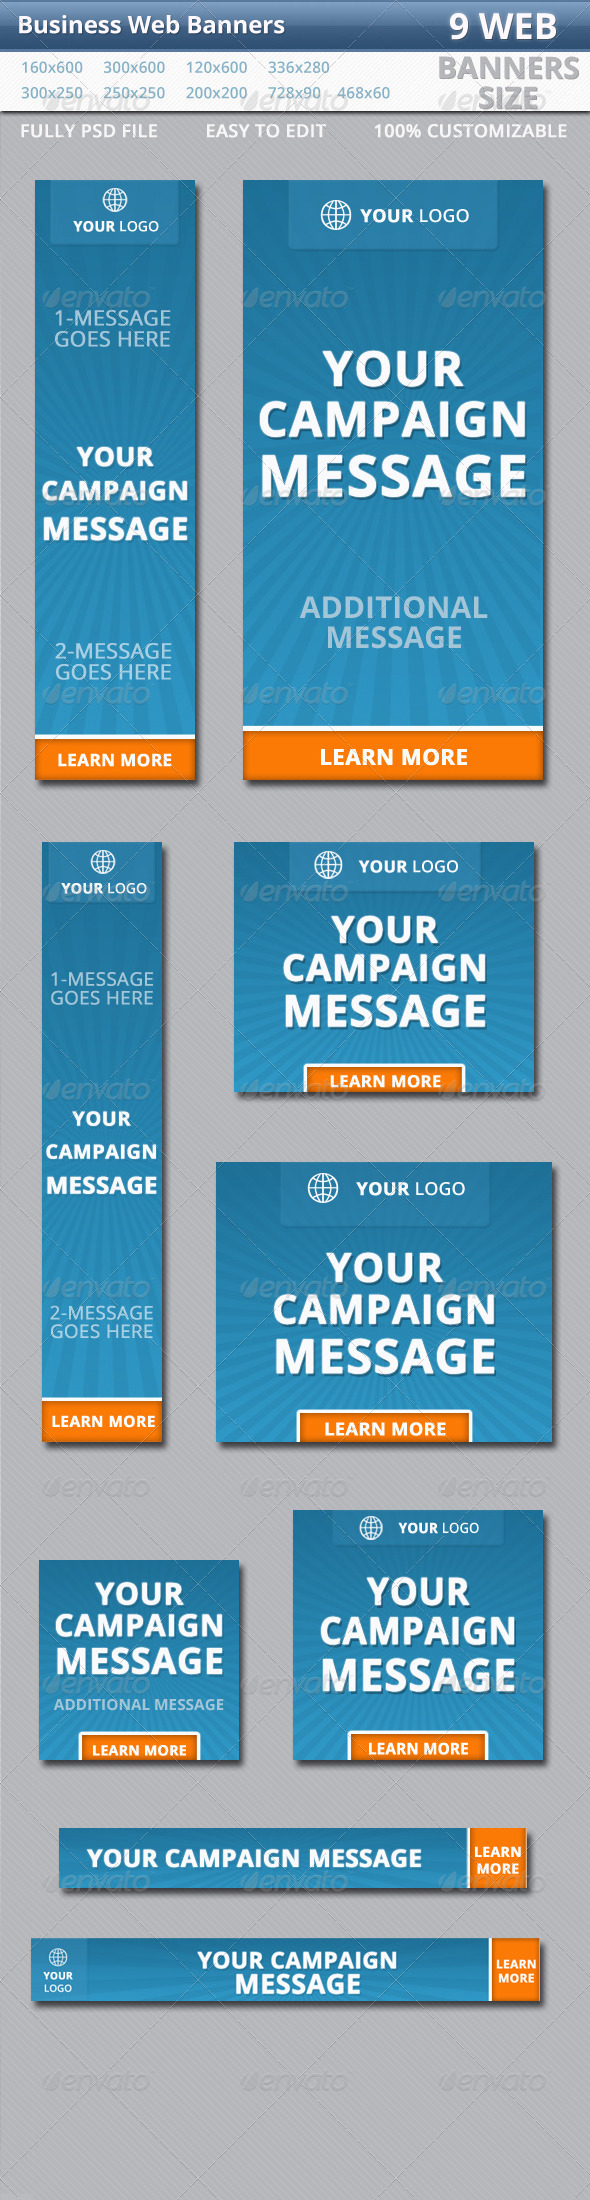 GraphicRiver Business Web Banners 5632523